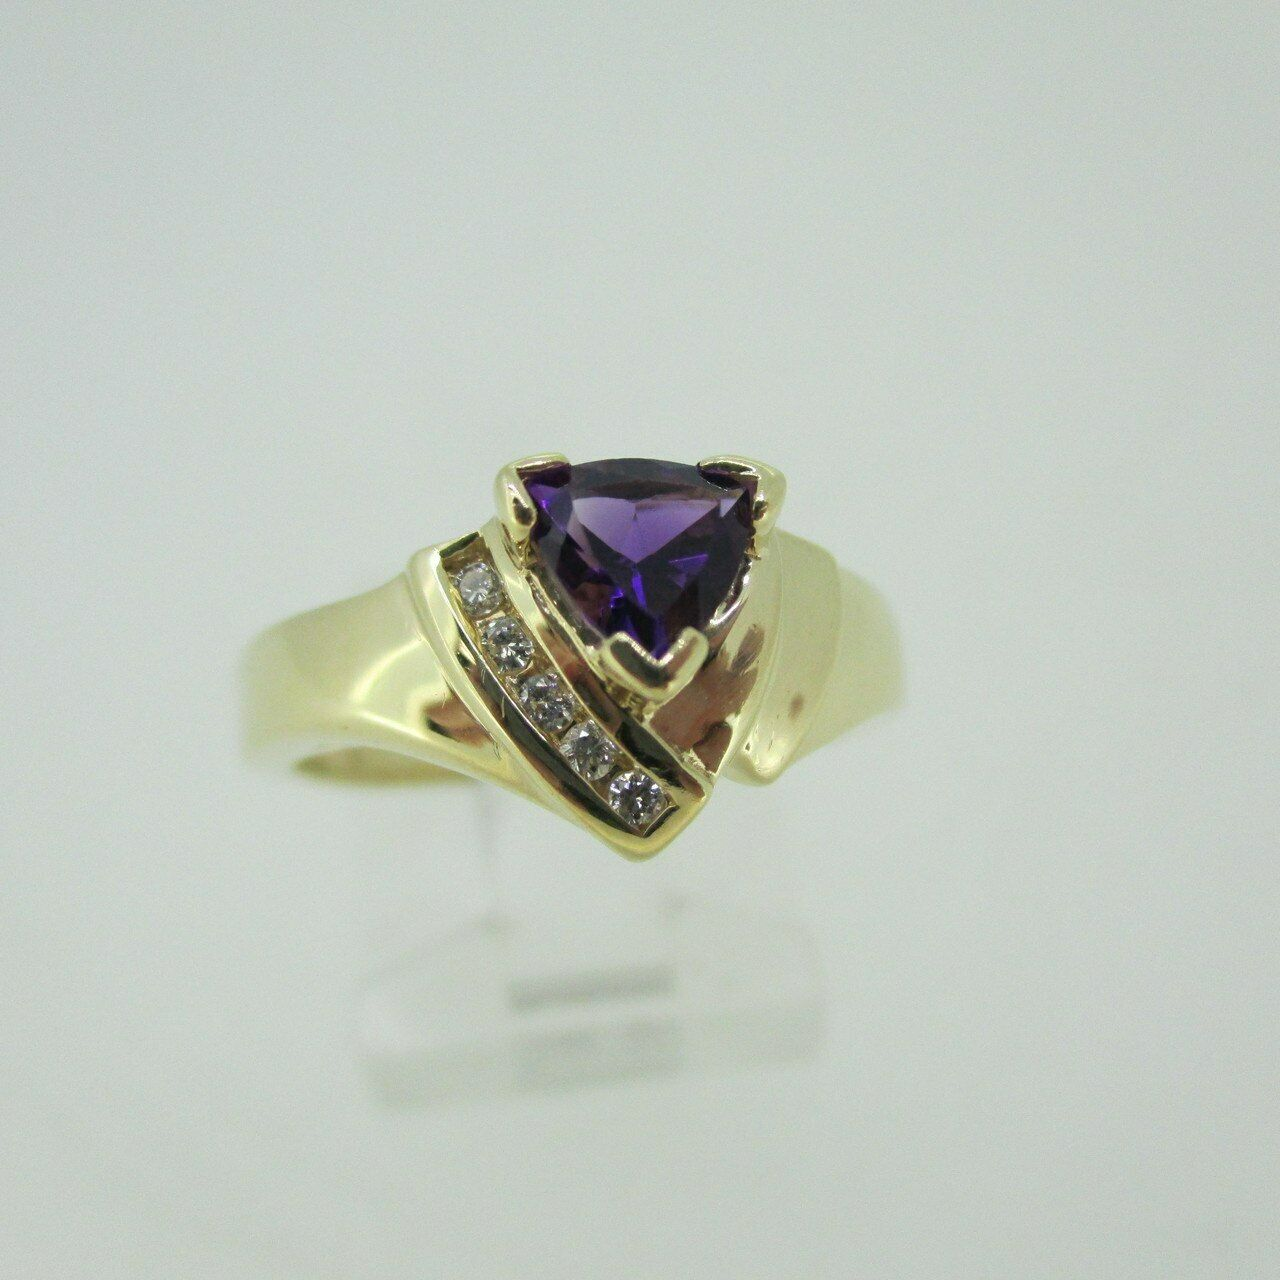 14k Yellow gold Trillion Cut Amethyst Ring with Diamond Accents Size 6 3 4